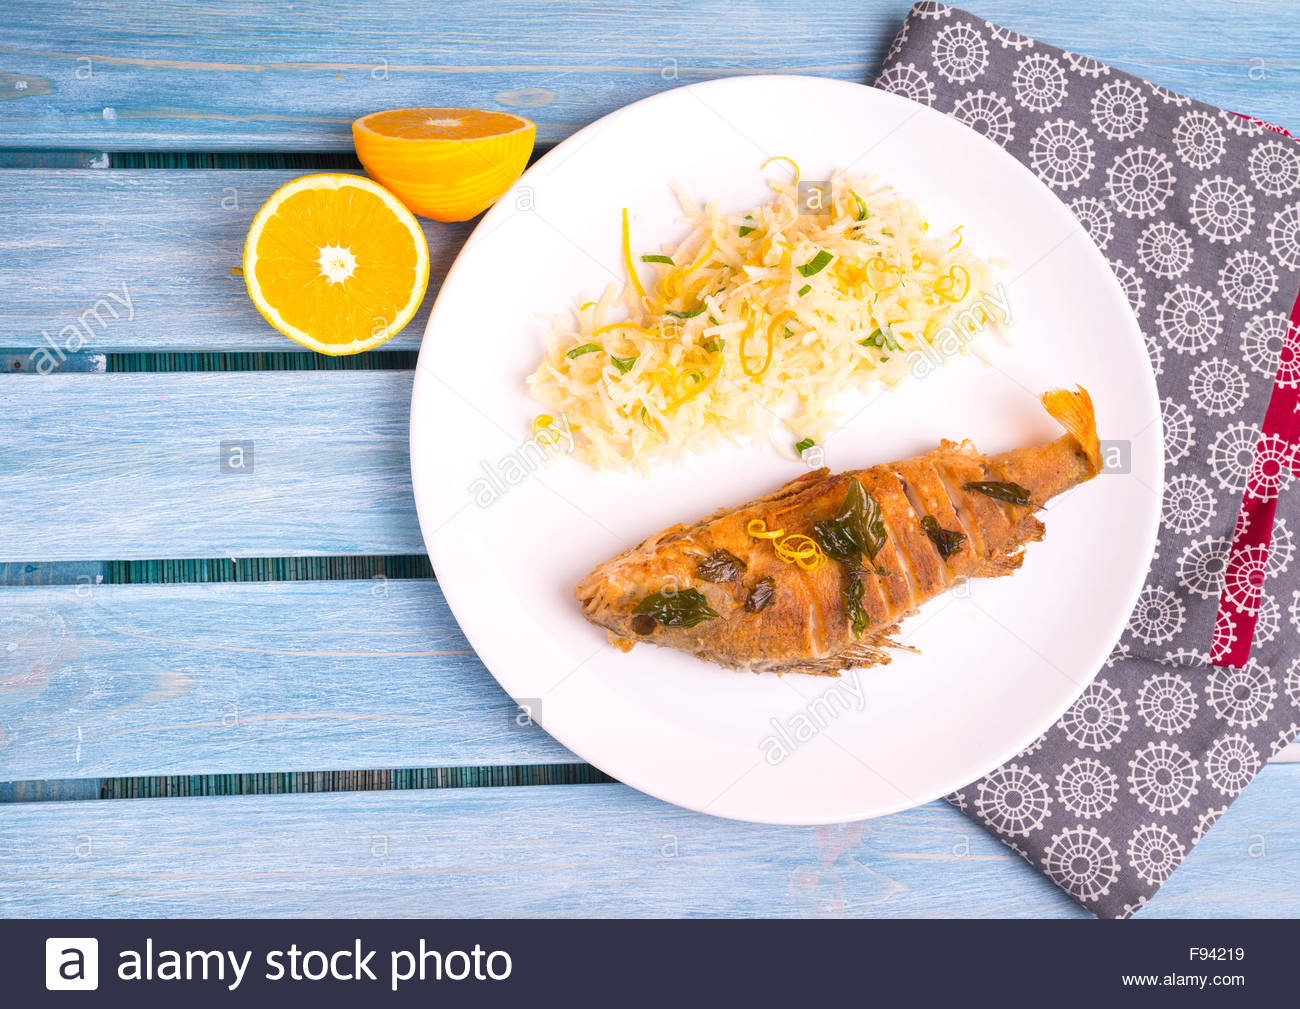 European perch fried with Thai basil and lemon, served with turnip and oranges salad - Stock Image